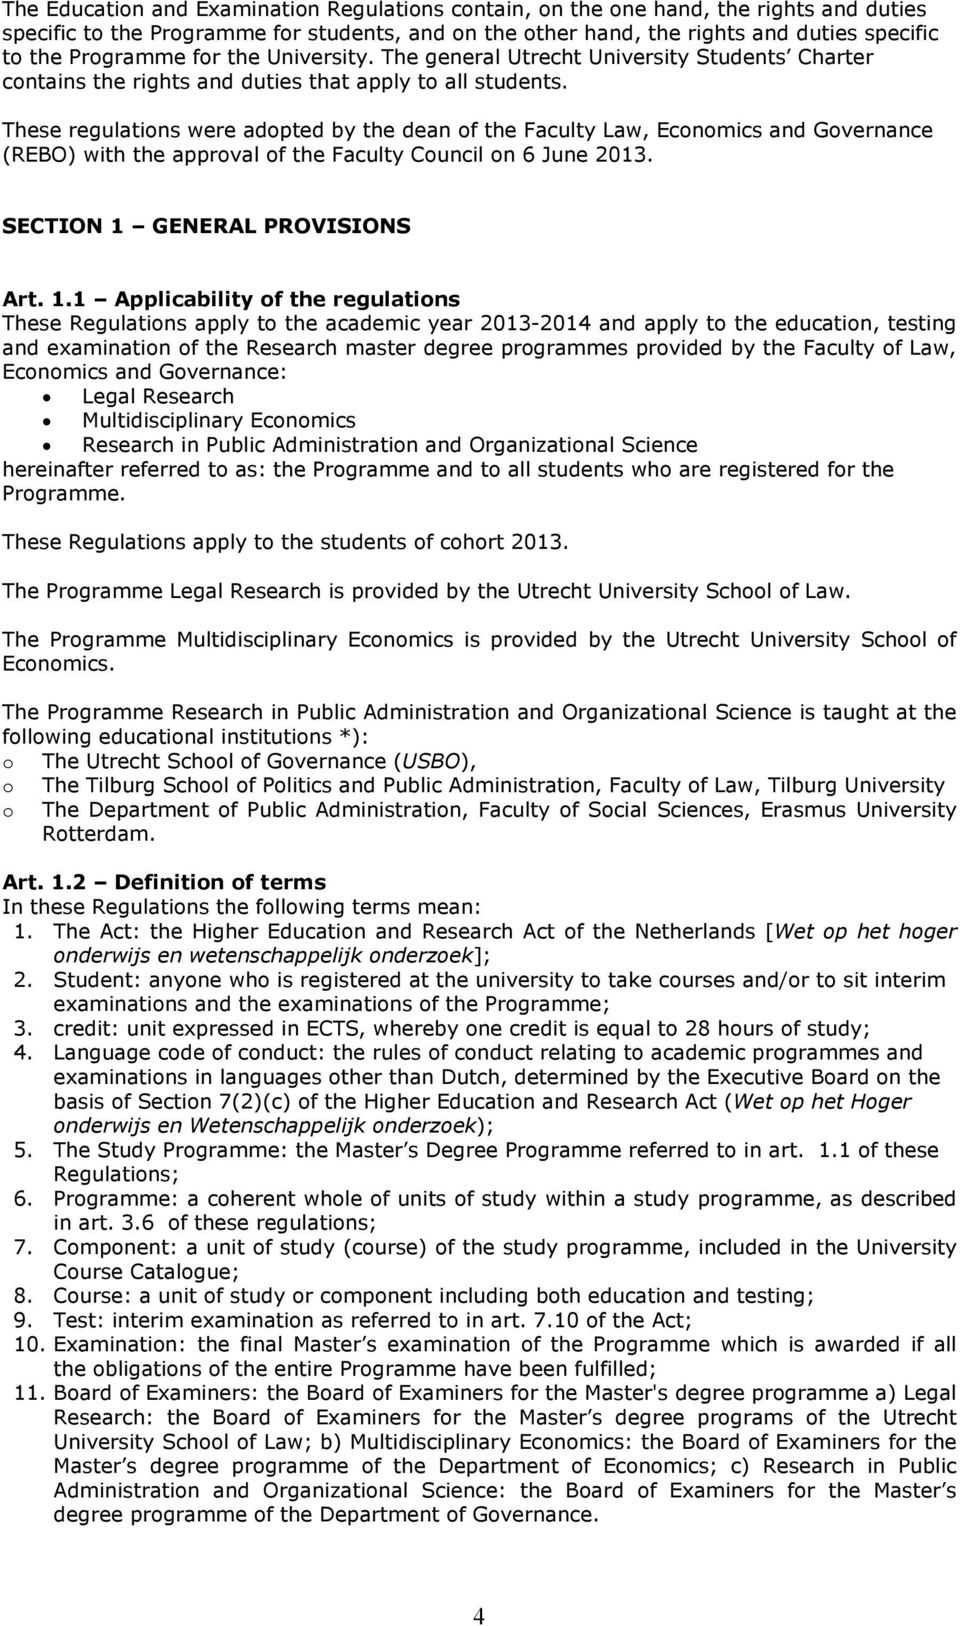 These regulations were adopted by the dean of the Faculty Law, Economics and Governance (REBO) with the approval of the Faculty Council on 6 June 2013. SECTION 1